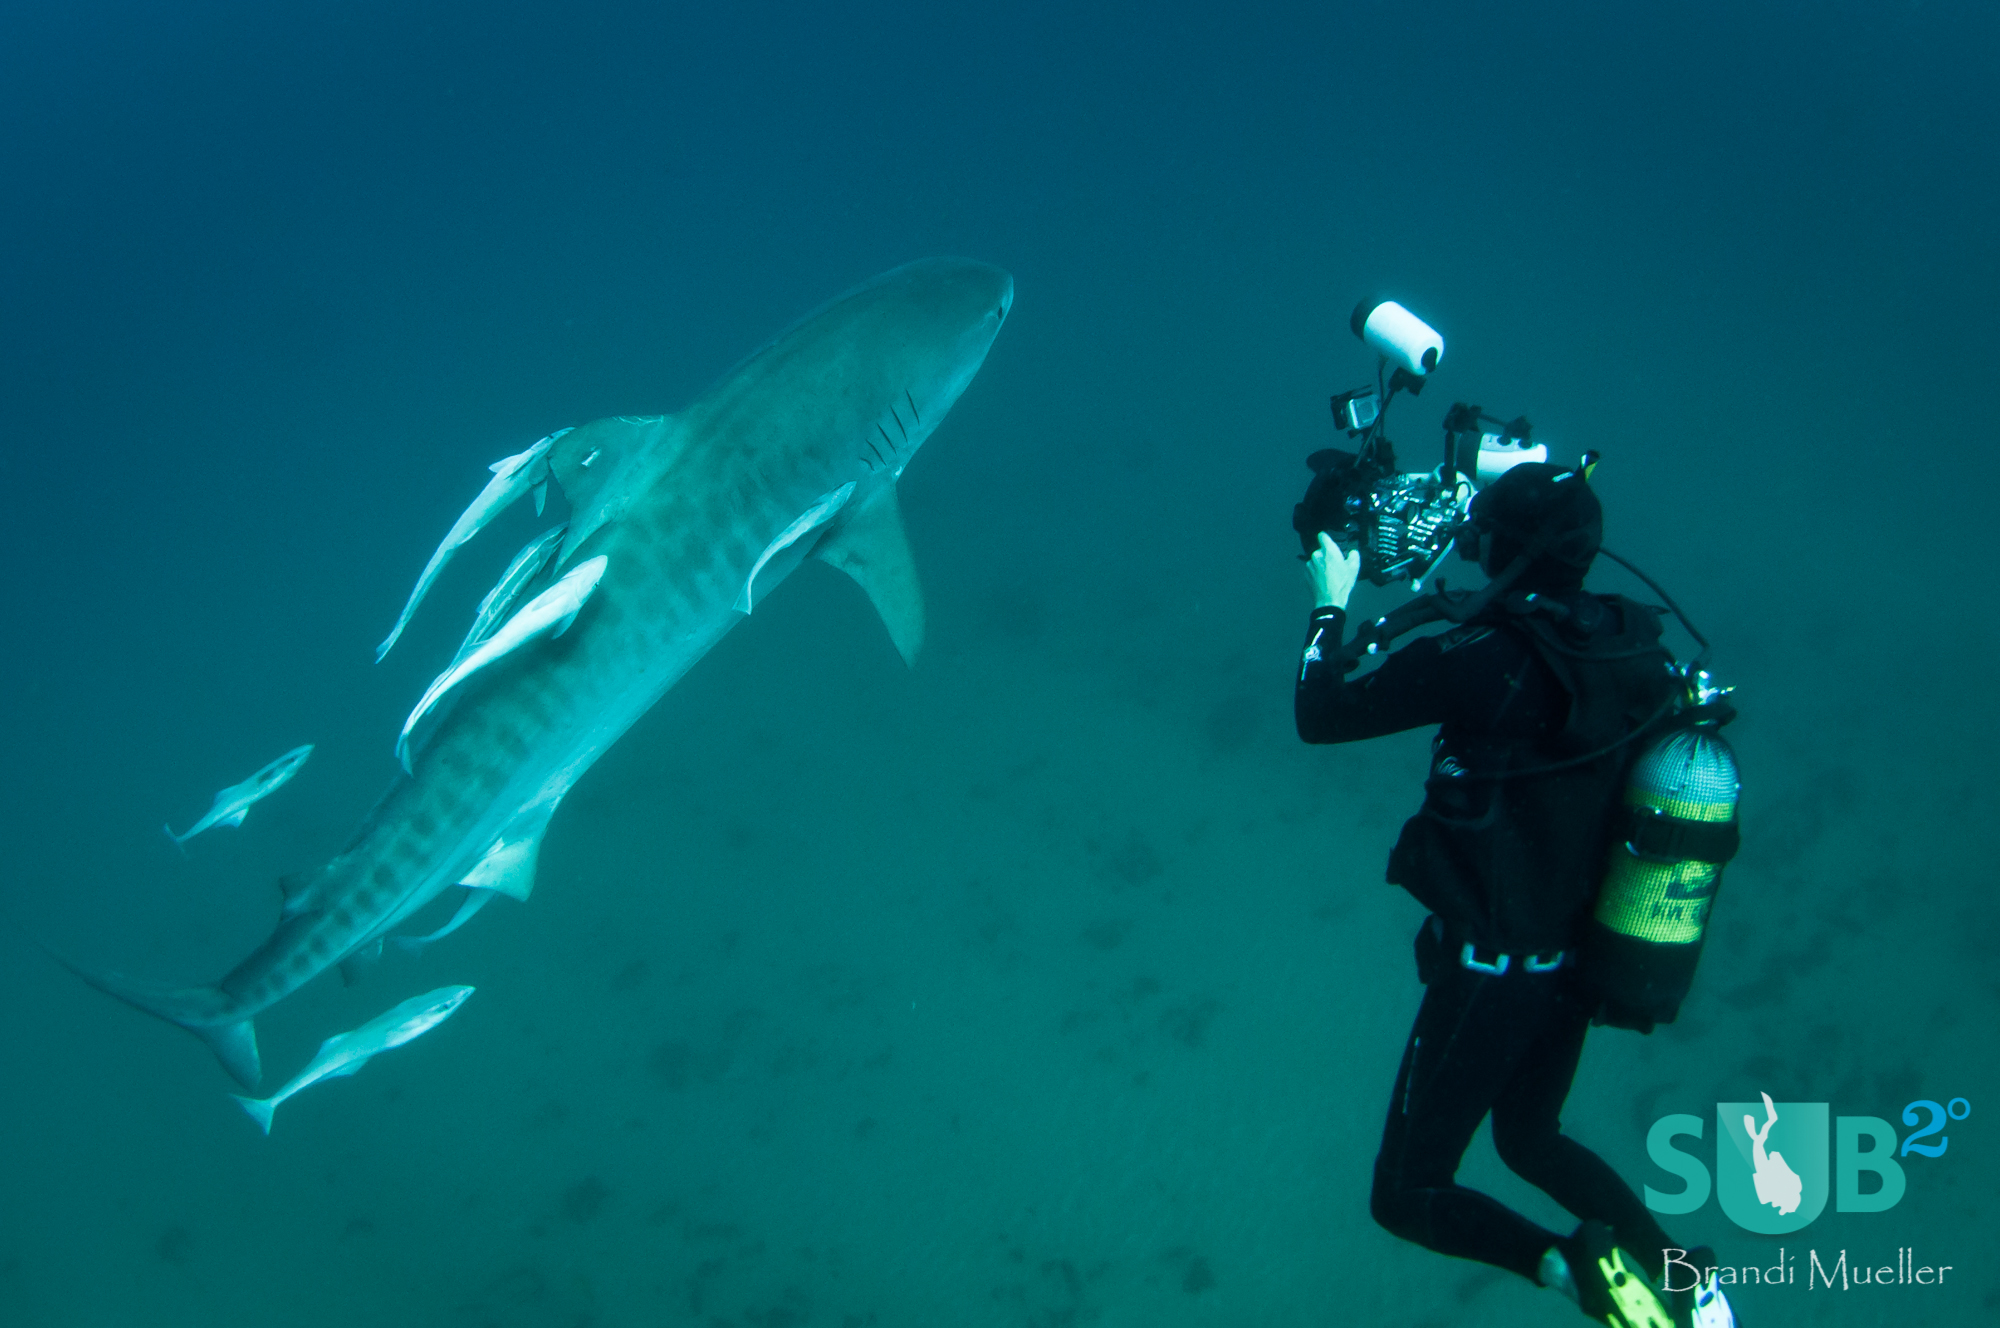 Swimming very close to the divers, this 14ft tiger shark doesn't seem bothered by us taking photos of her.